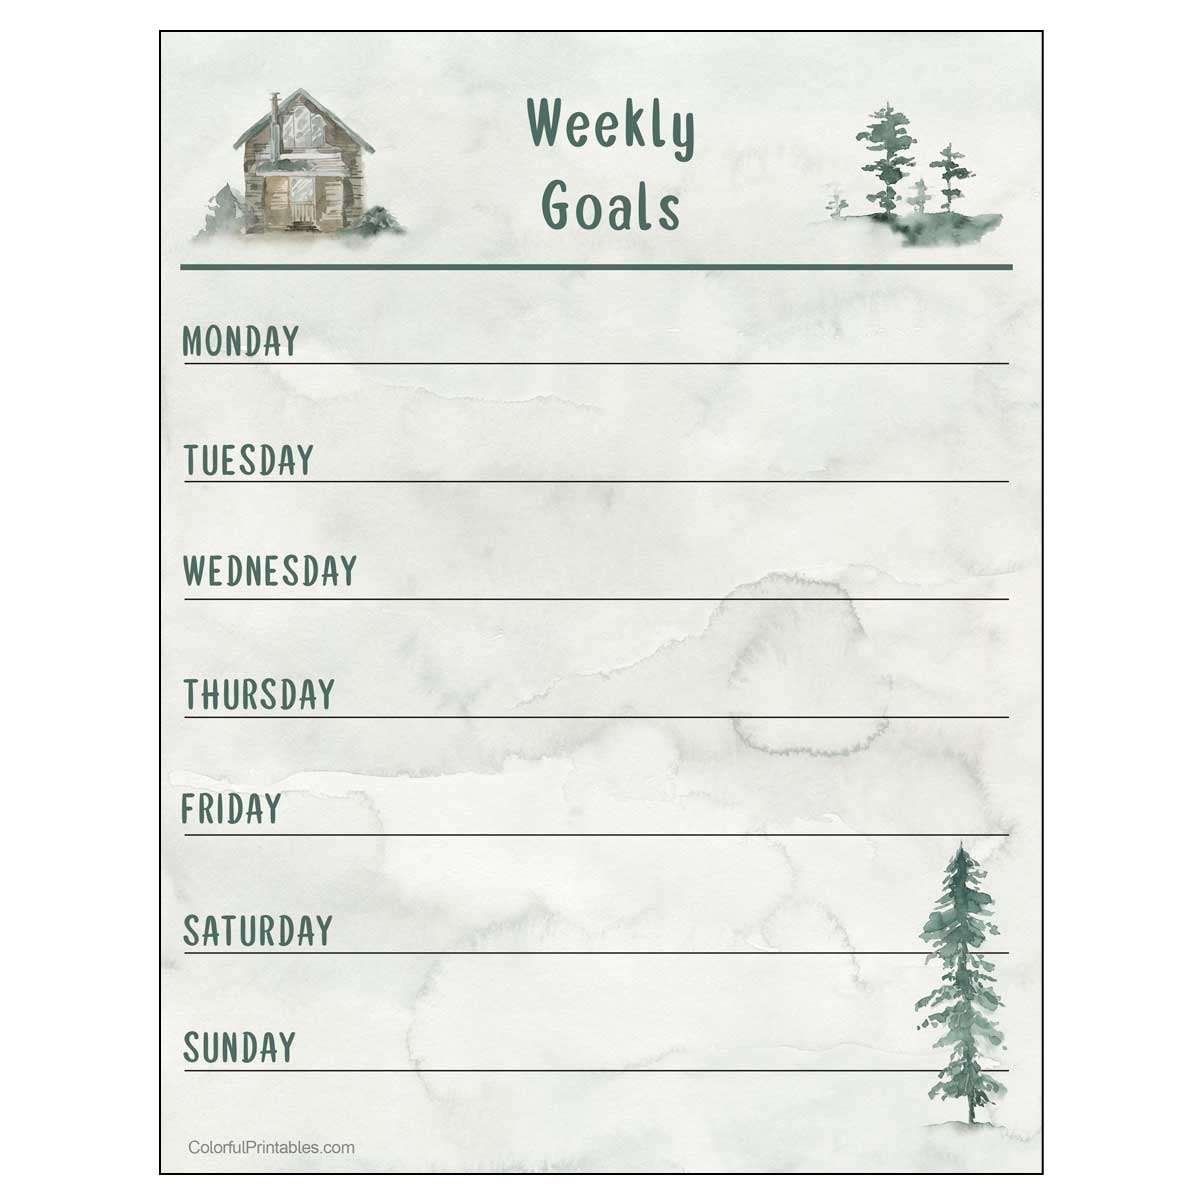 Cabin in the woods free printable weekly goals